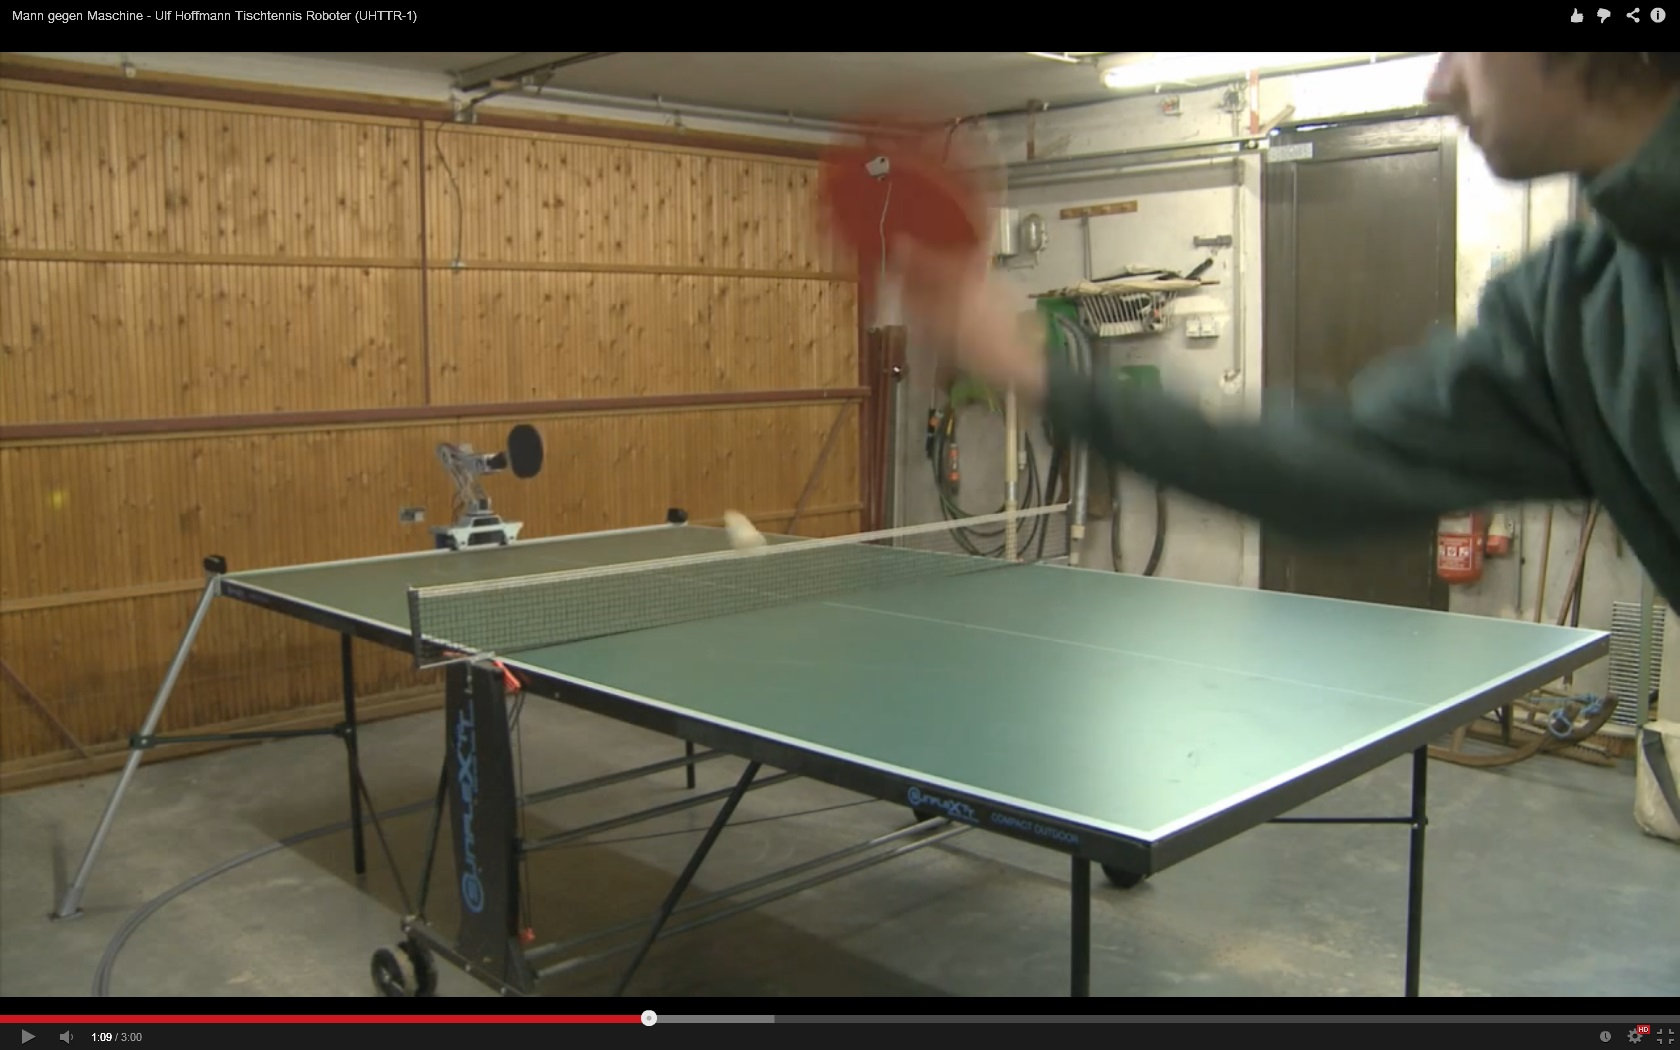 camera in the upper right of the garage door is in front of the table tennis racket